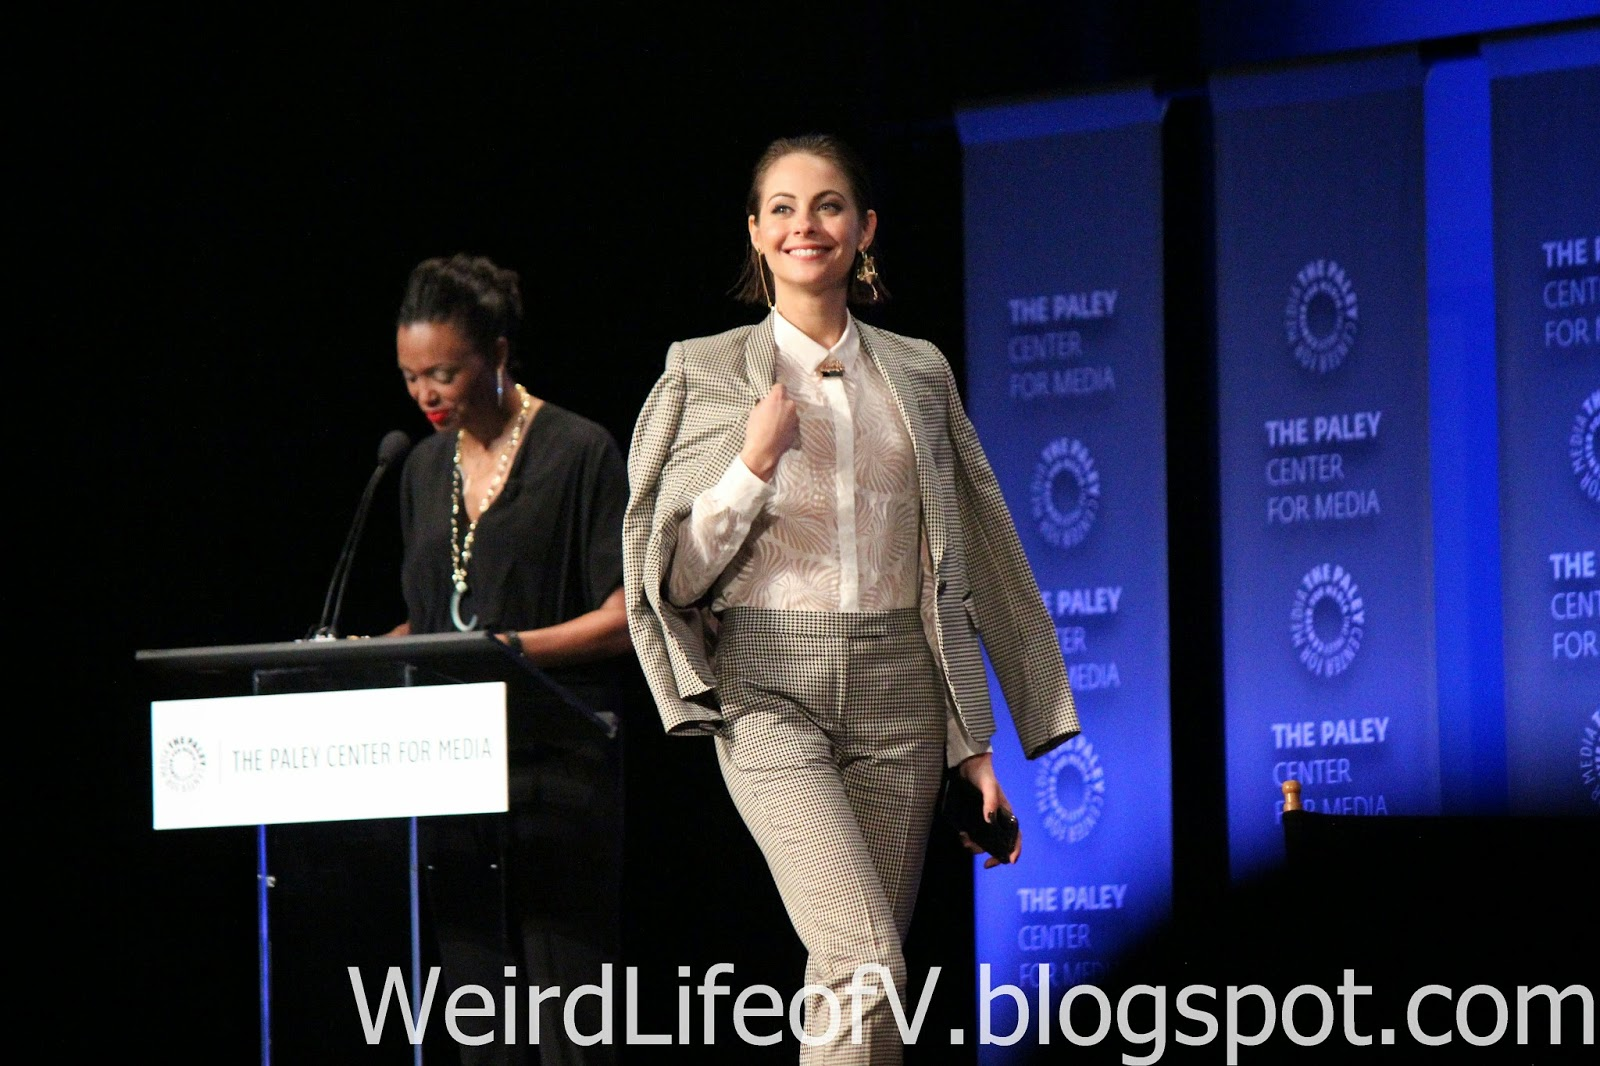 Willa Holand walking on stage